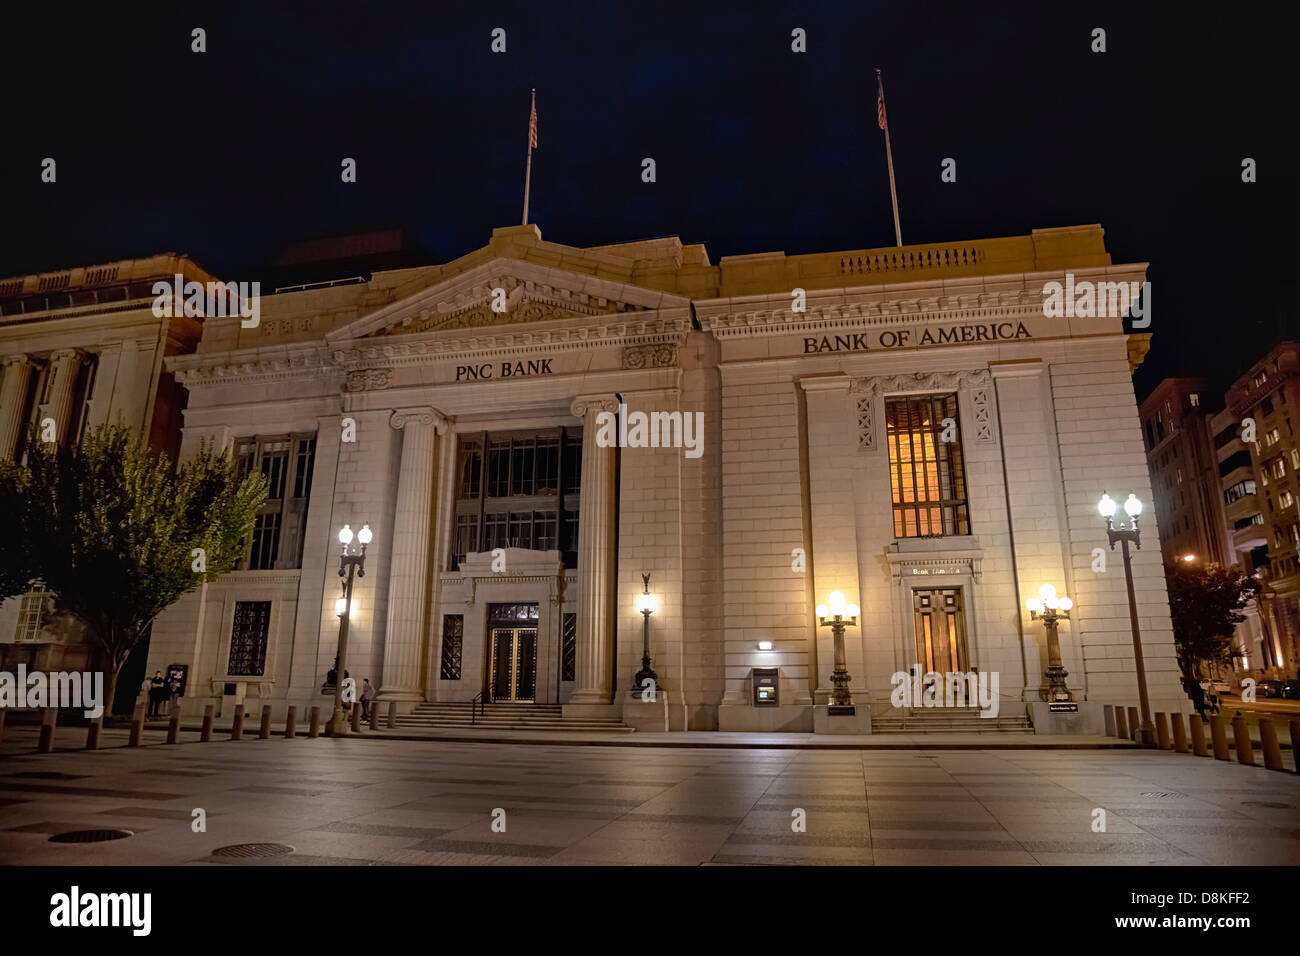 Bank of America and PNC bank in Washington D C Stock Photo: 56977622